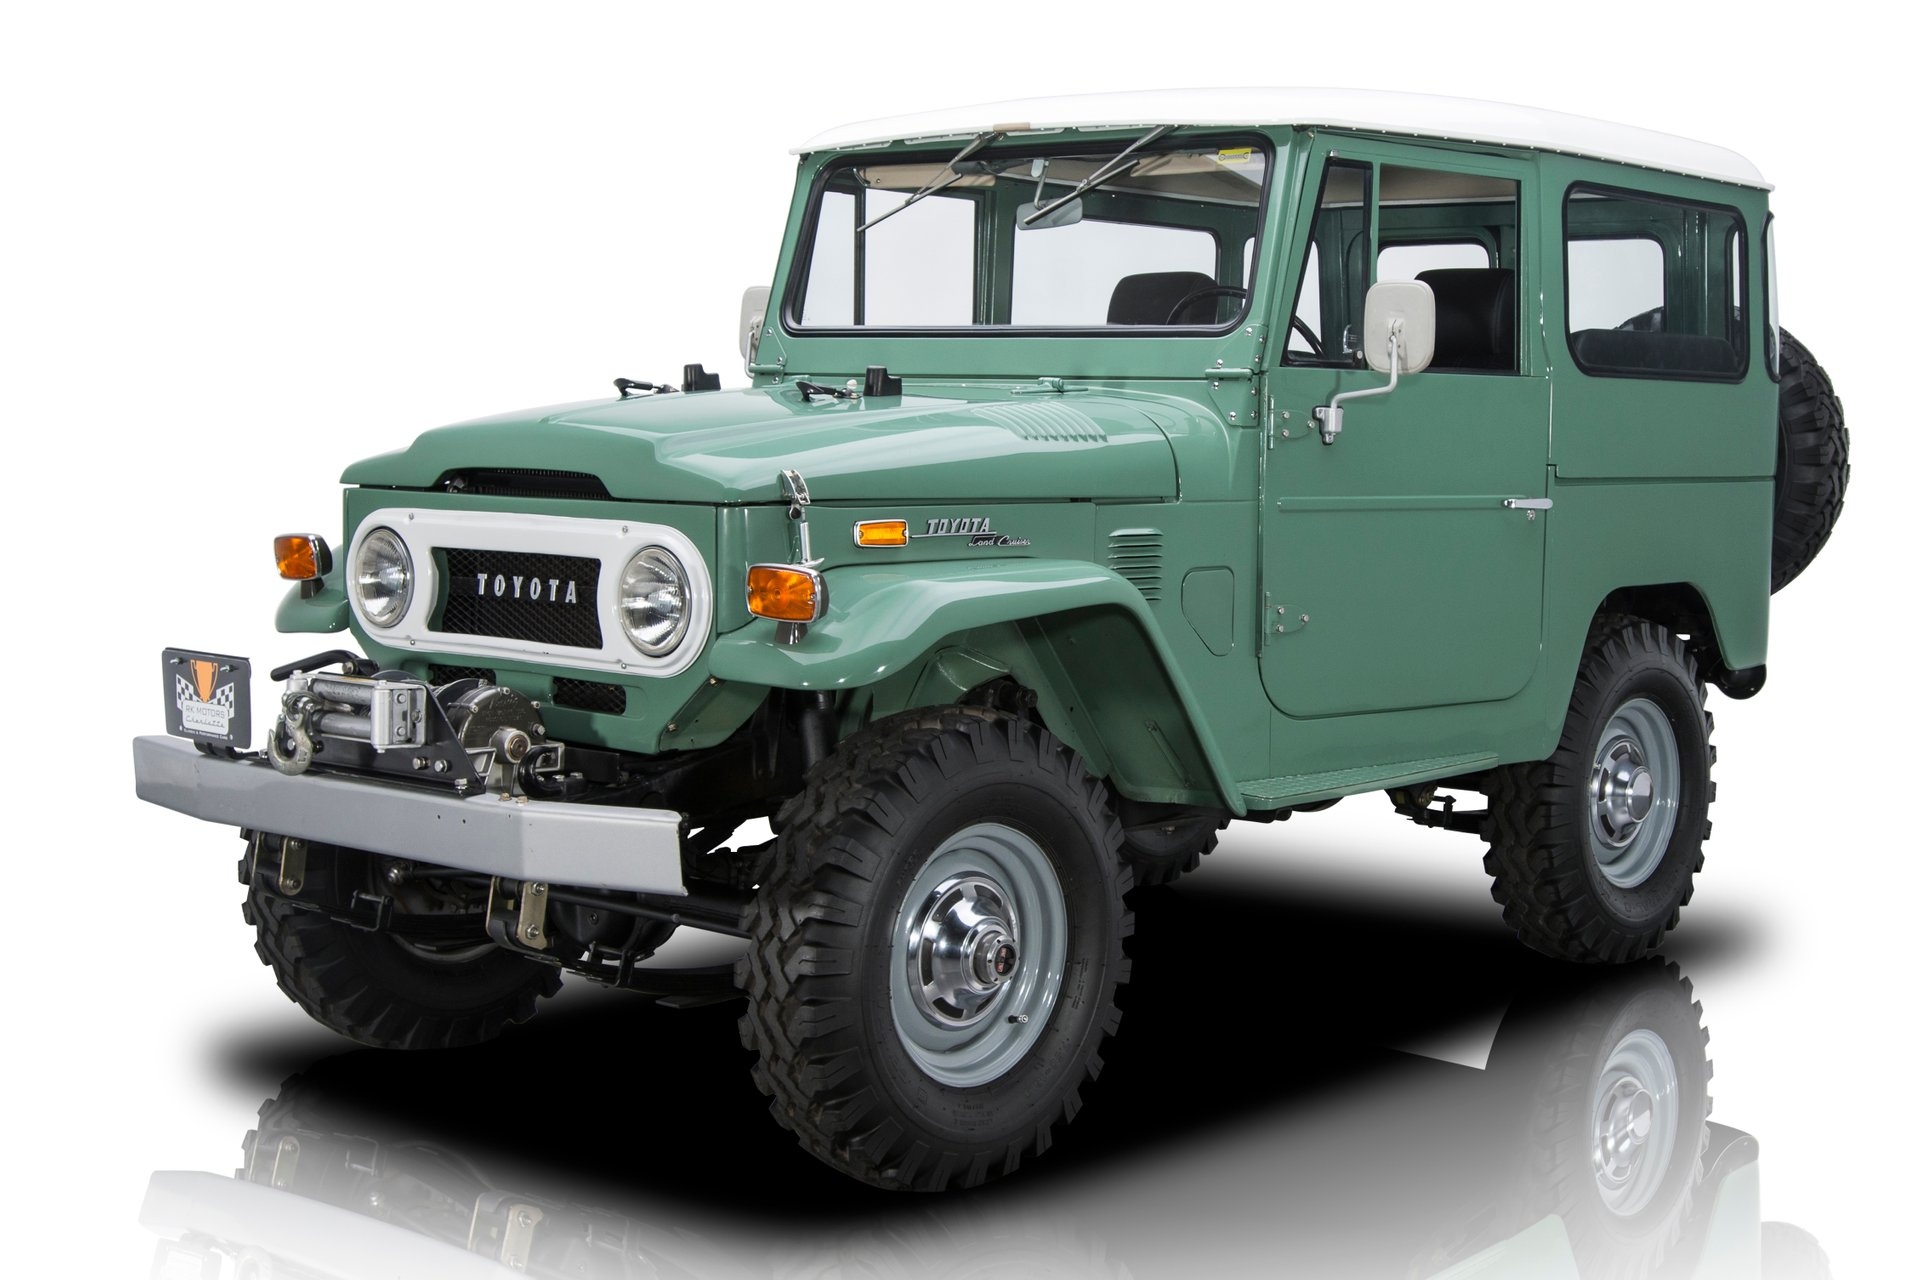 136081 1973 Toyota Land Cruiser Rk Motors Classic Cars And Muscle Cars For Sale